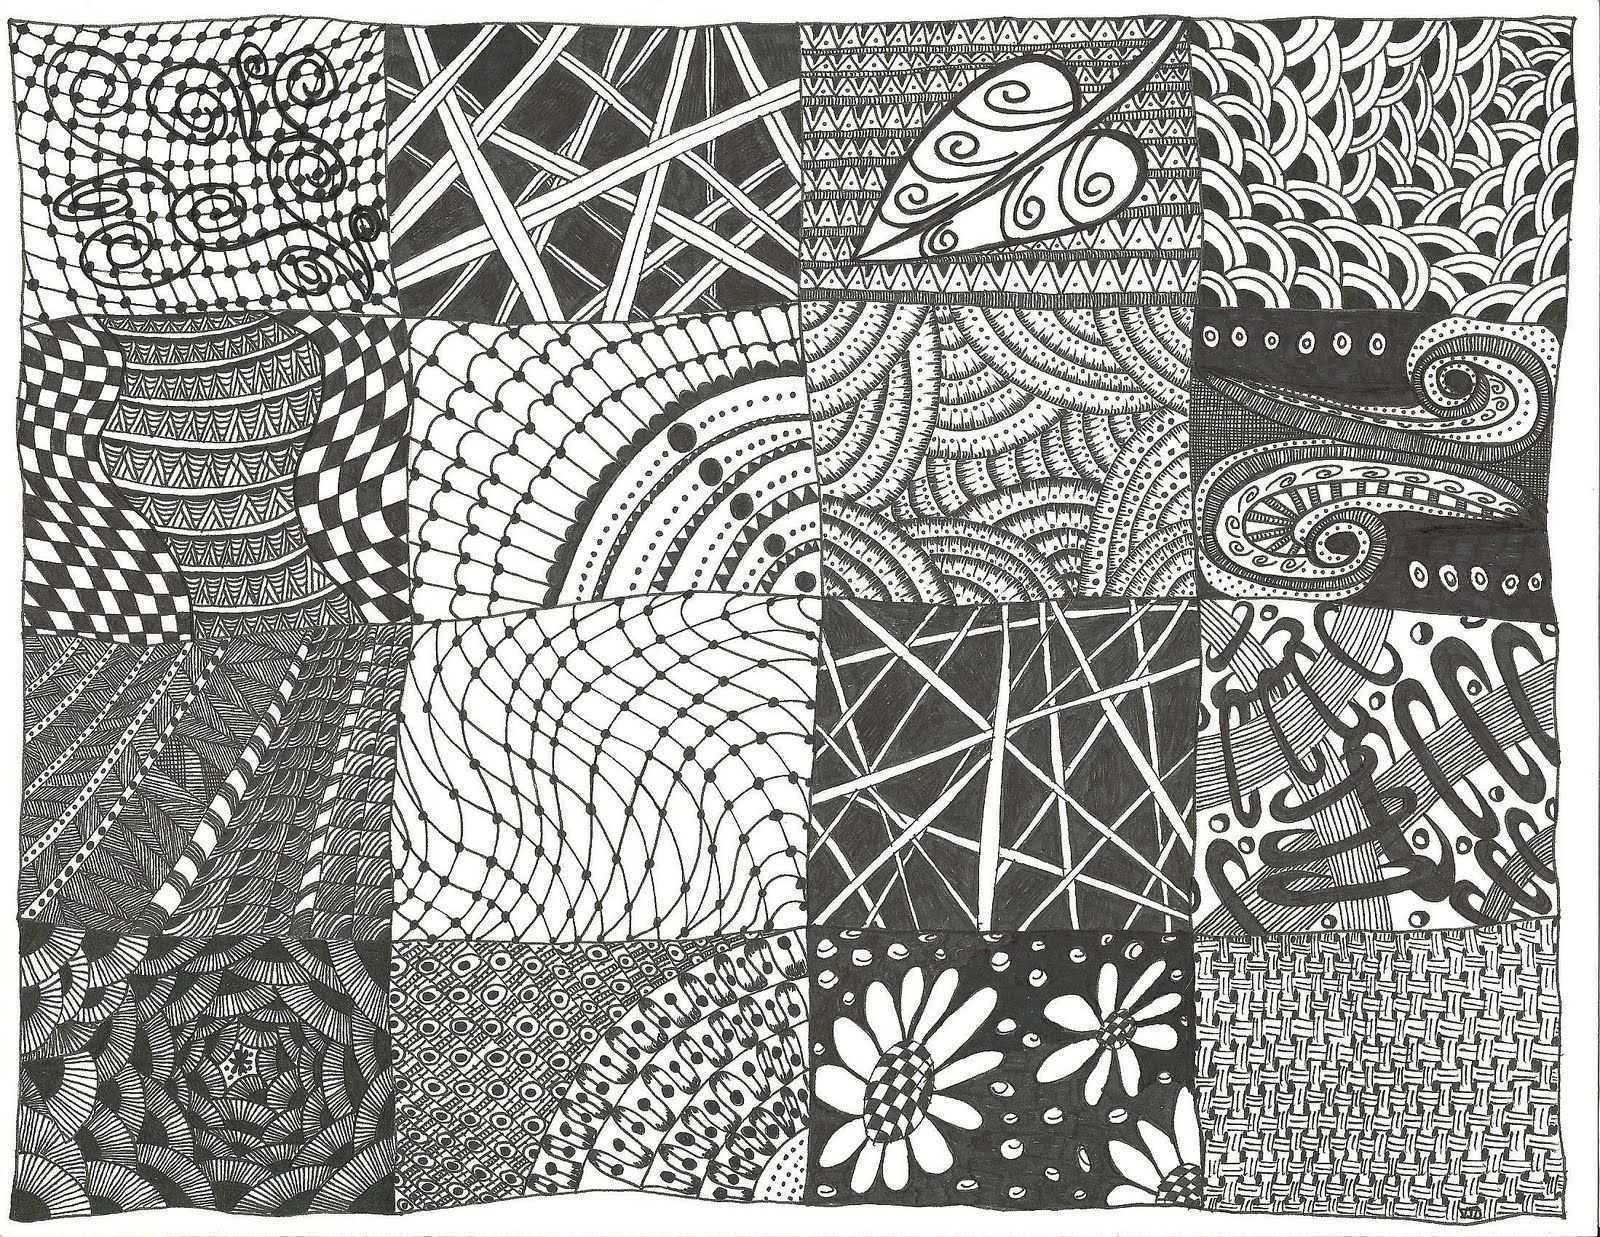 Pin By Violet Althouse On Zentangle Zentangle Patterns Zentangle Doodle Patterns